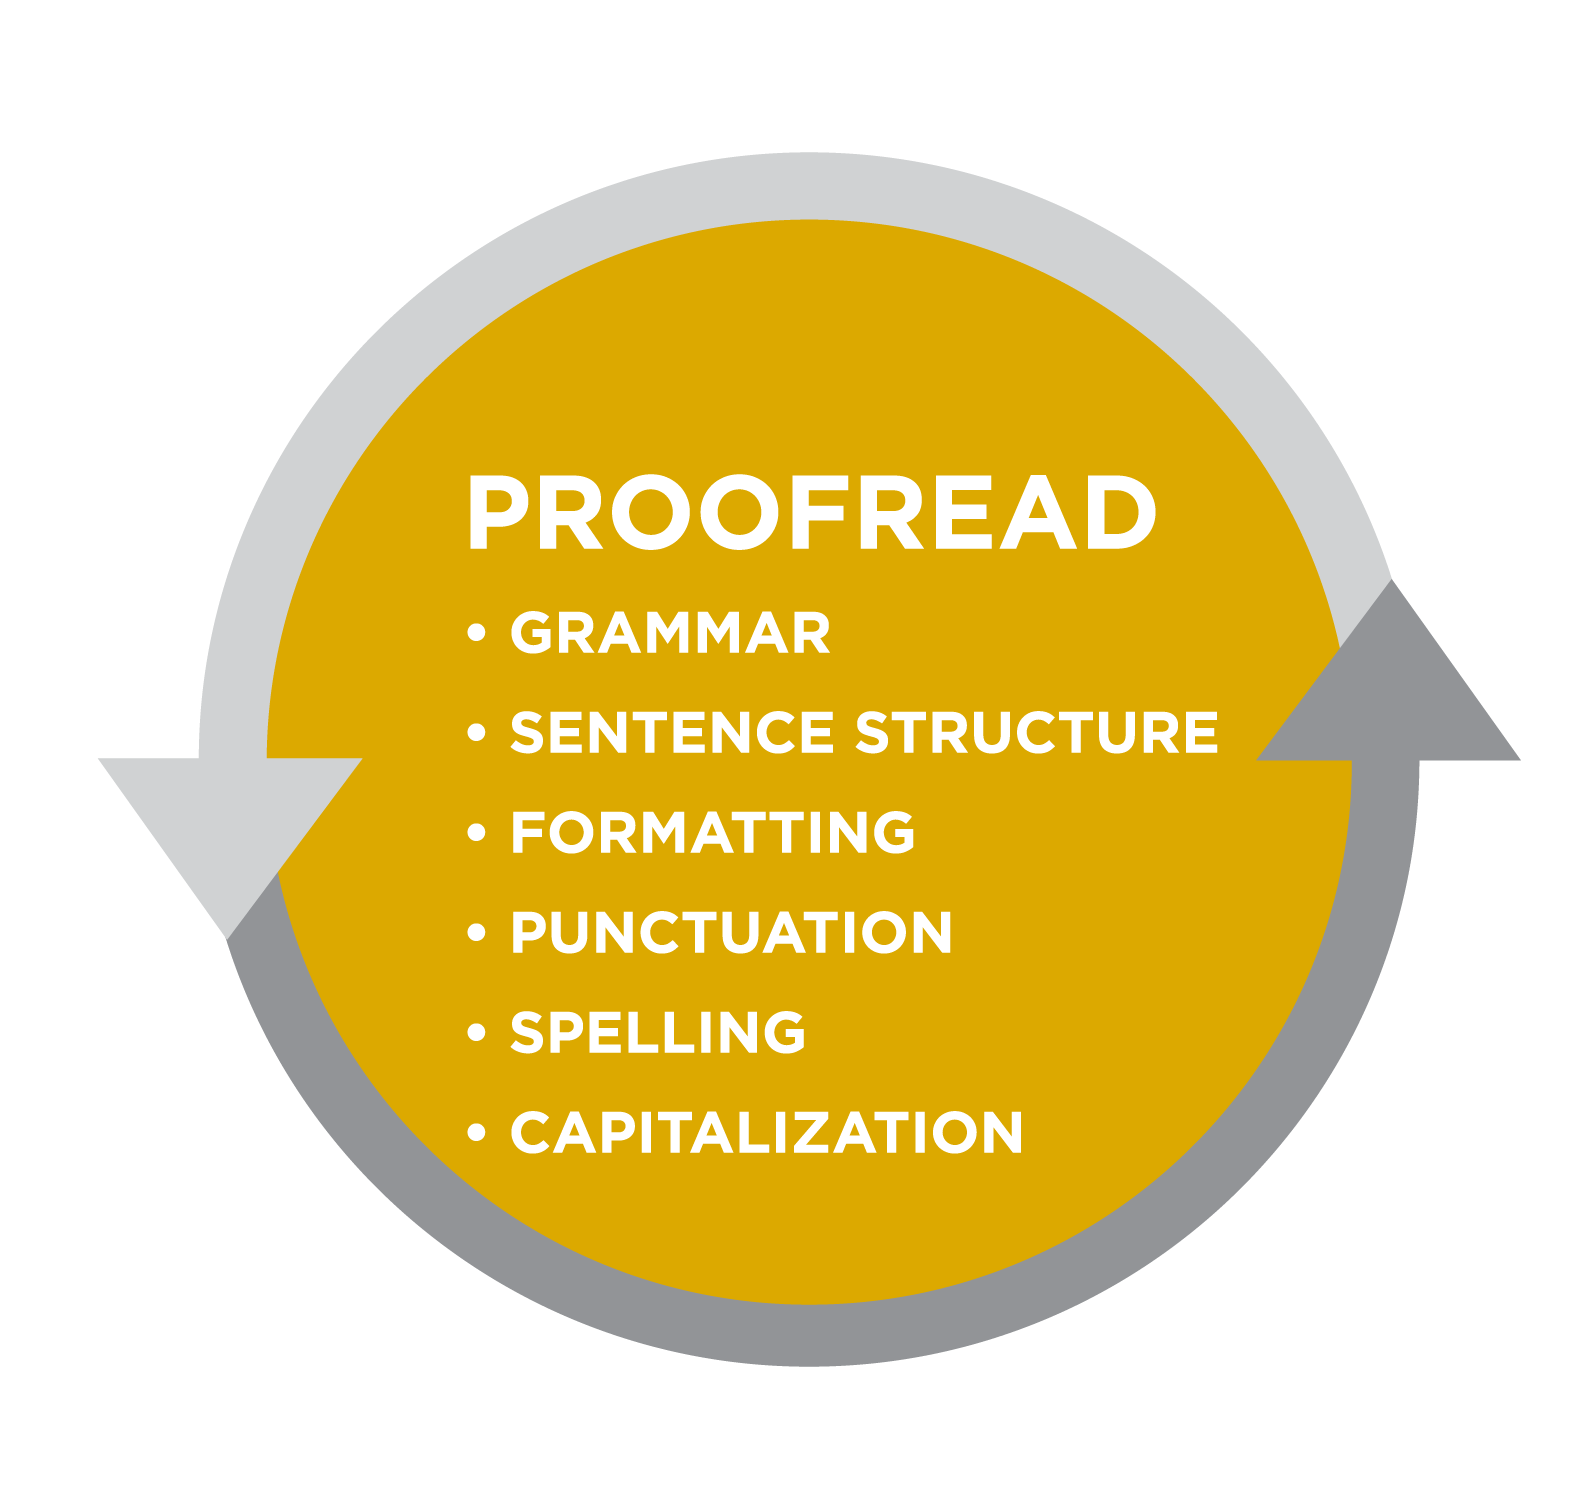 Graphic titled Proofread. Bullet list: grammar, sentence structure, formatting, punctuation, spelling, capitalization. All is in a mustard-yellow circle bordered by gray arrows.